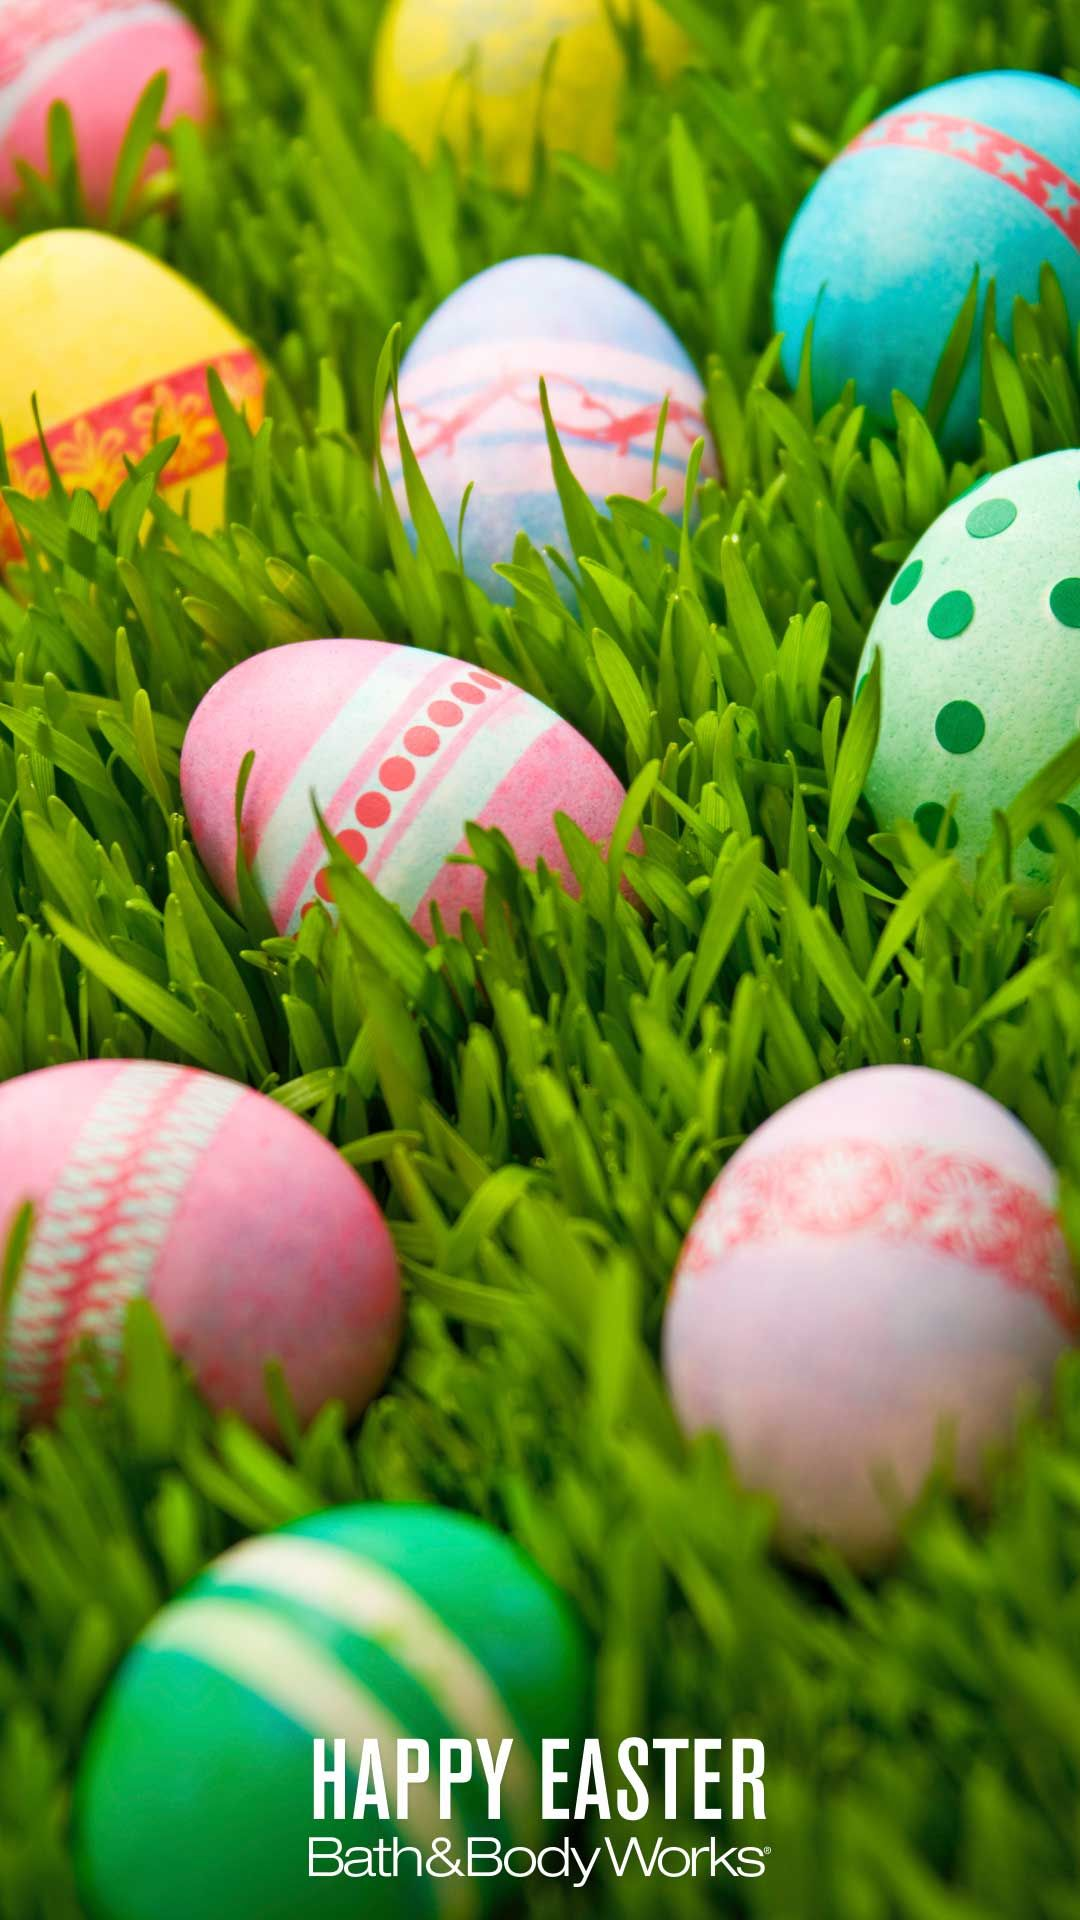 Pin By N A T On Bath And Body Works Easter Wallpaper Happy Easter Wallpaper Happy Easter Pictures